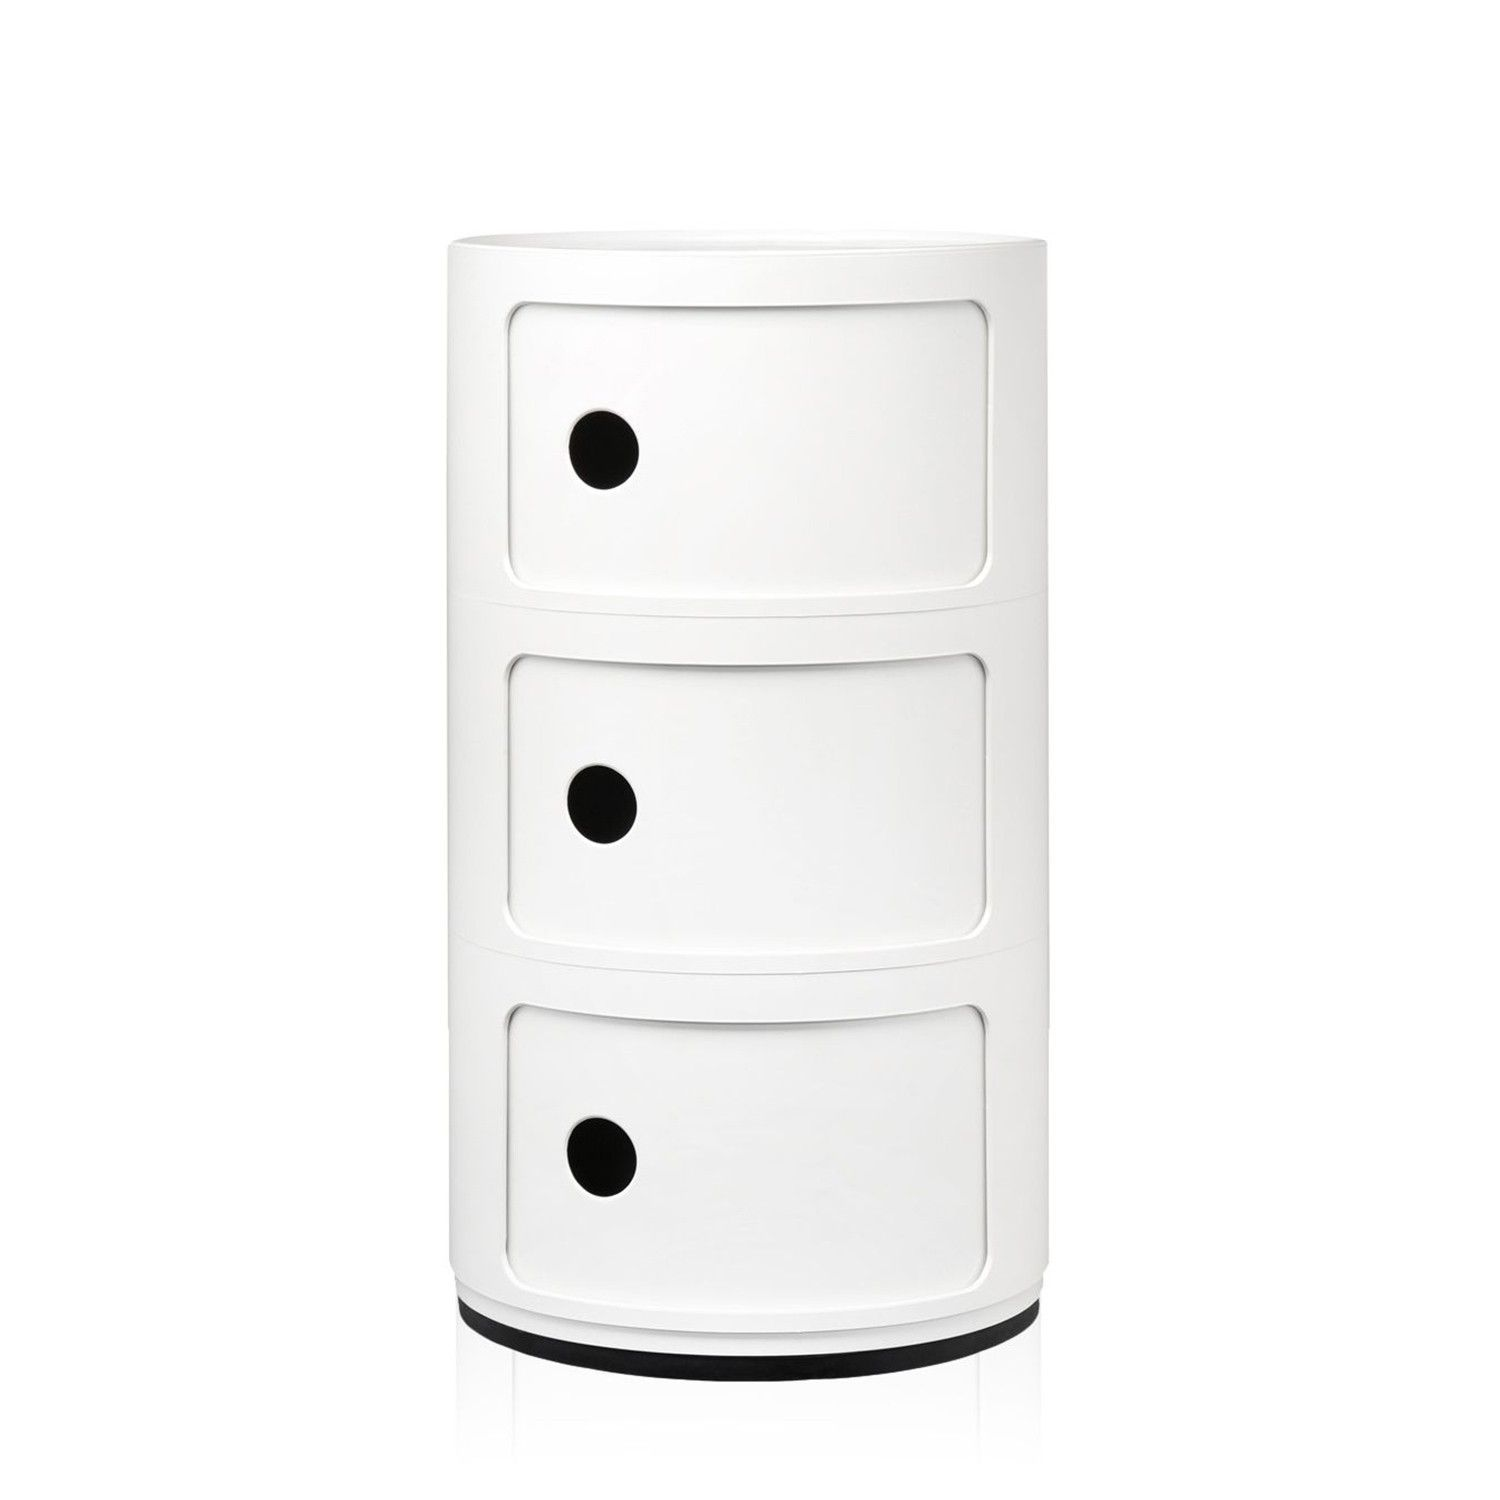 kartell componibili kast rond large 3 comp flinders verzendt gratis. Black Bedroom Furniture Sets. Home Design Ideas